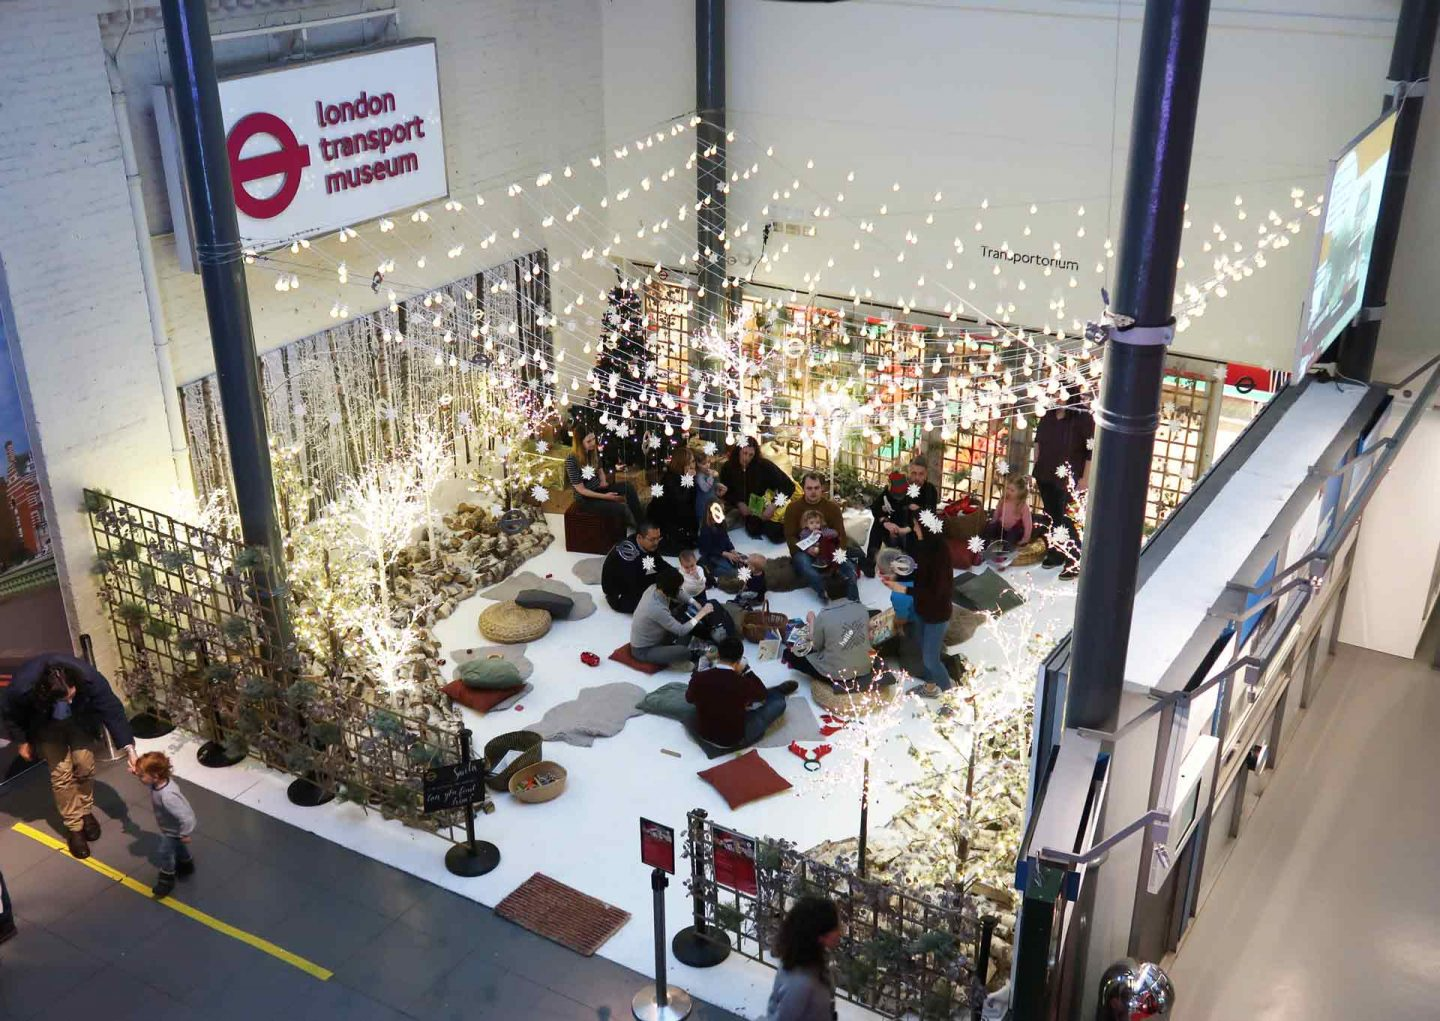 The corner of the London Transport Museum reserved for Christmas activities